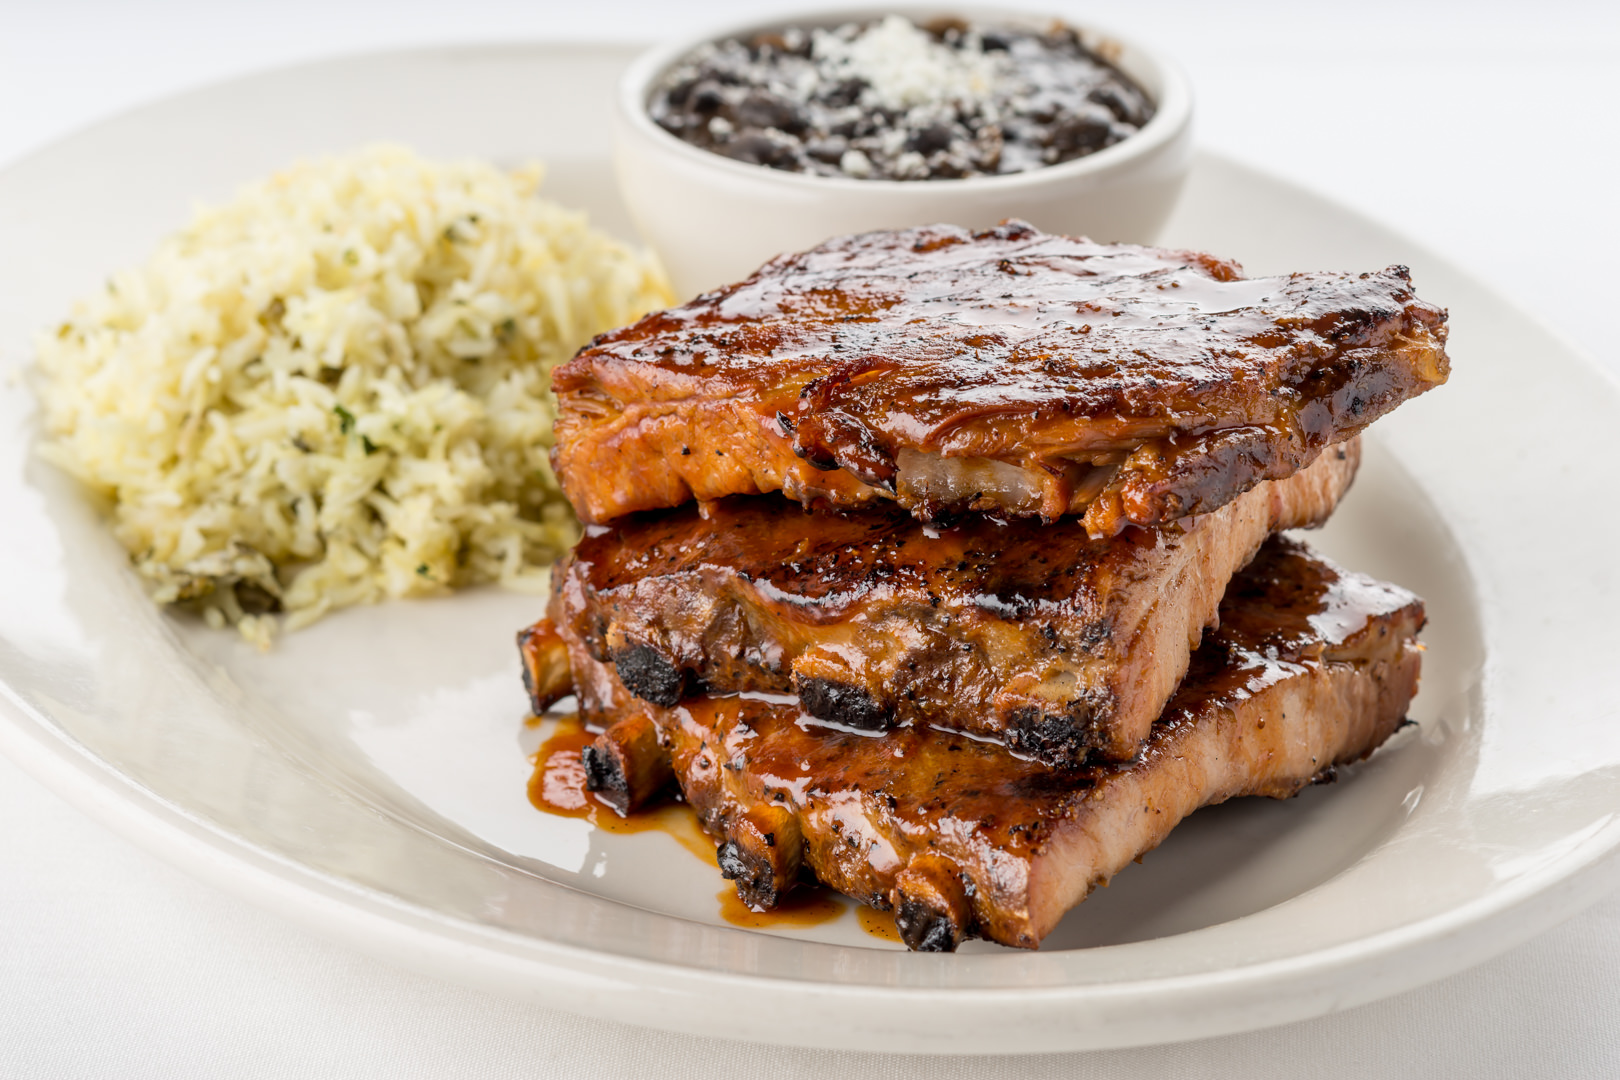 Cool River Cafe - Hickory Smoked BBQ Ribs